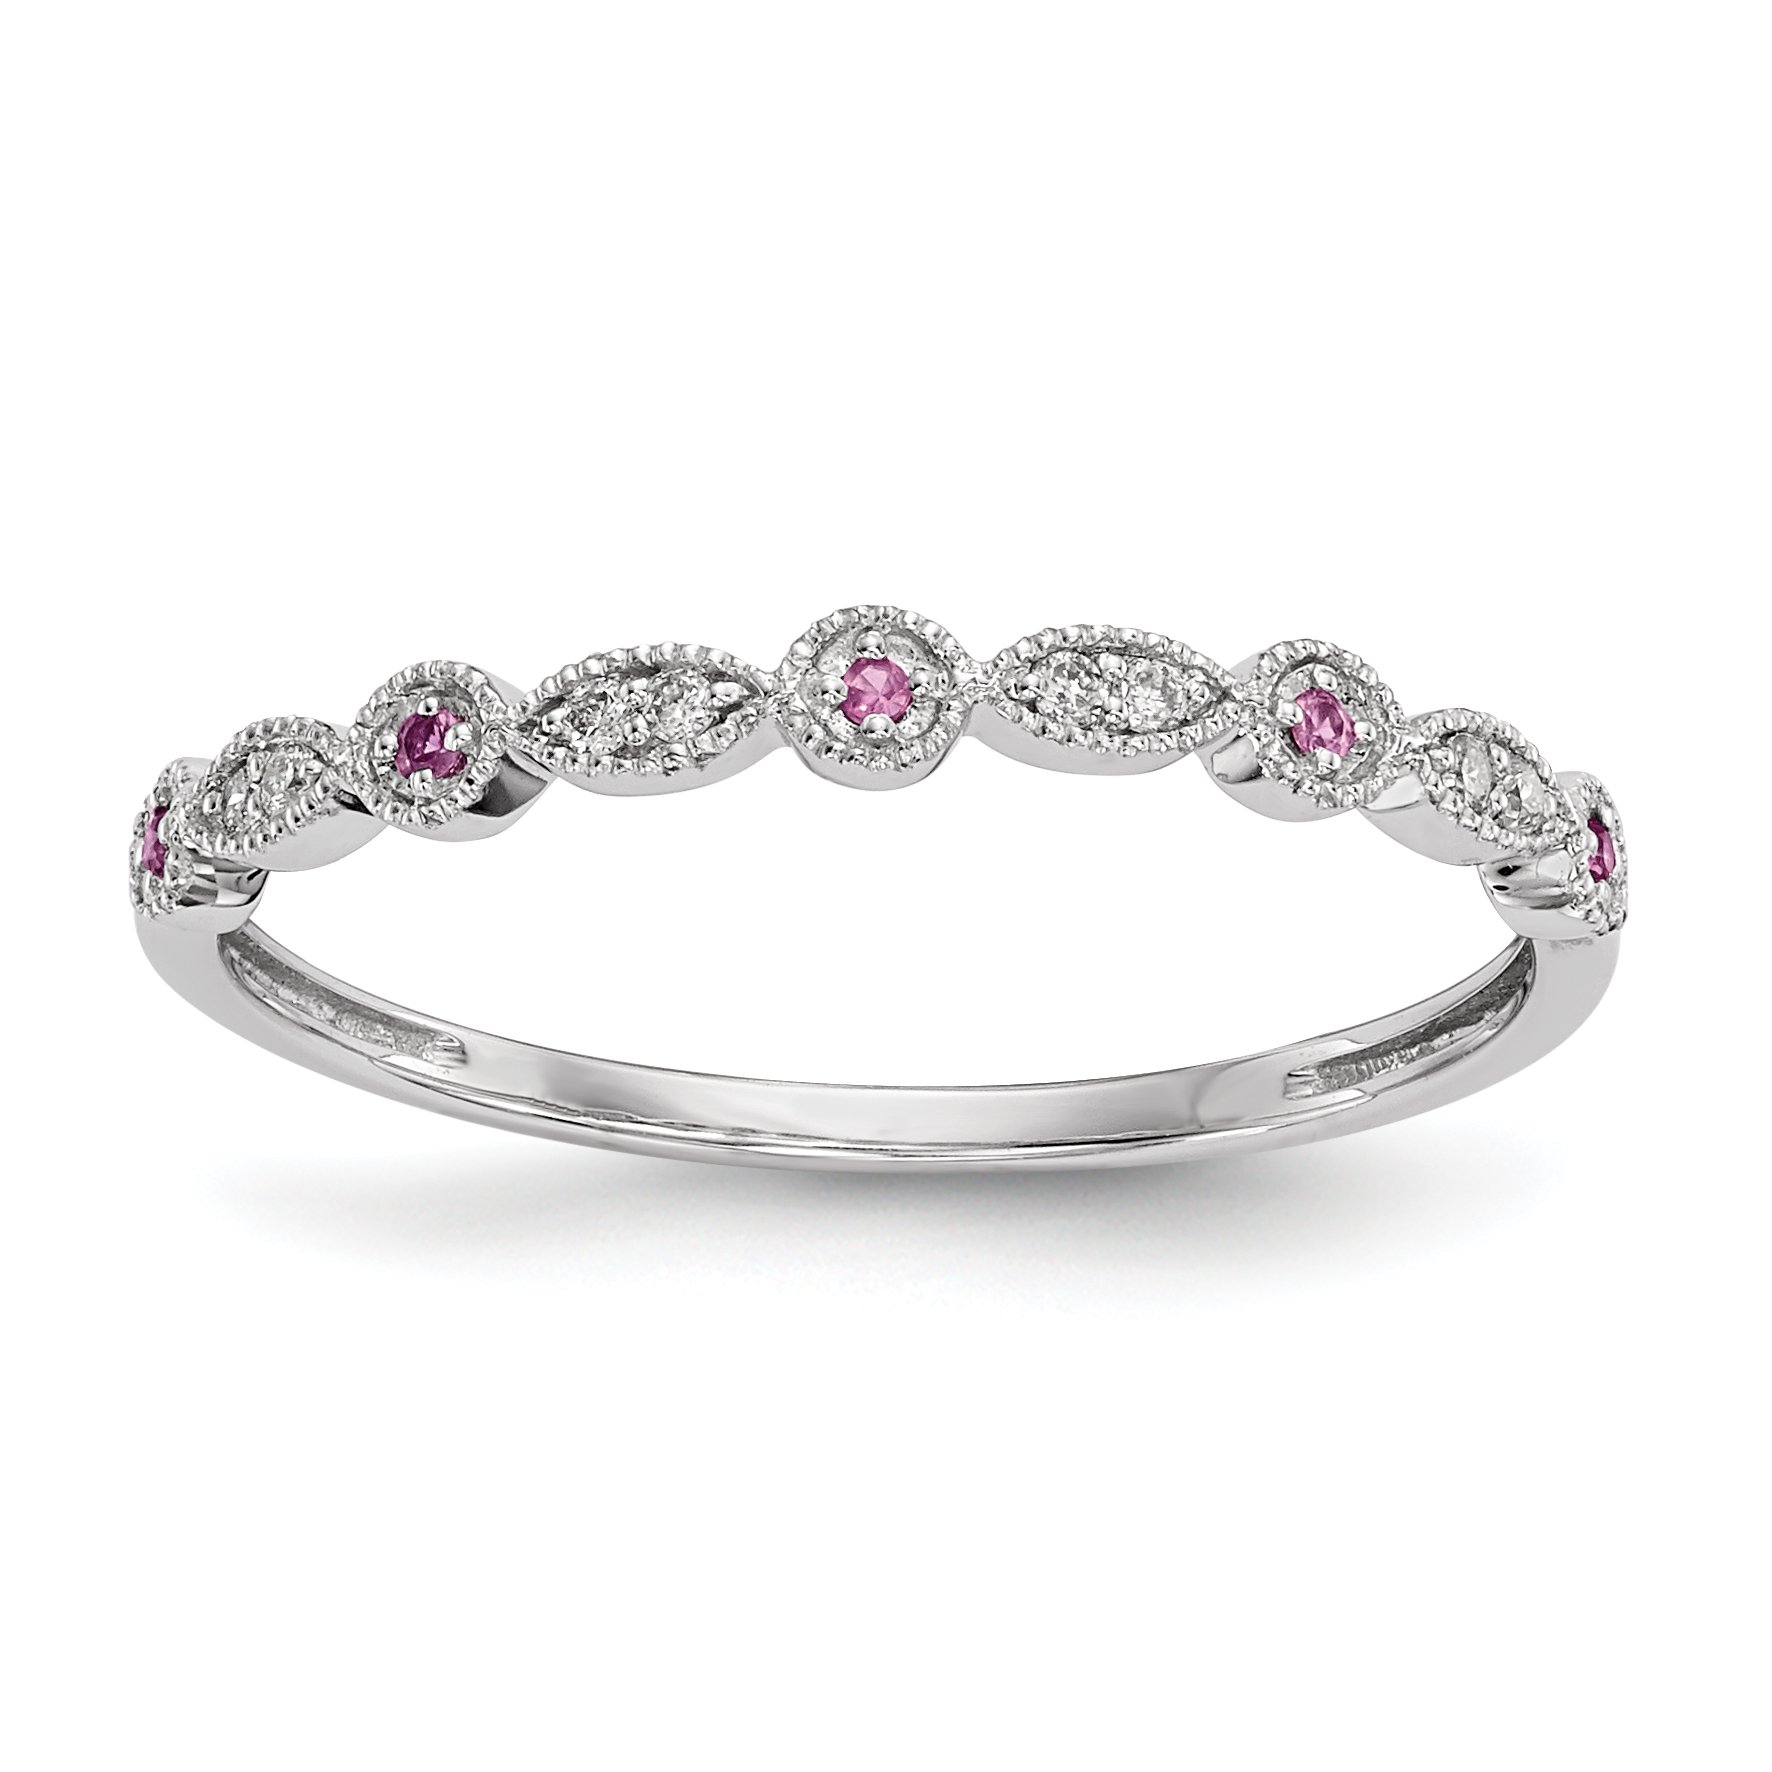 ICE CARATS 14k White Gold Diamond Pink Sapphire Band Ring Size 6.75 Gemstone Fine Jewelry Gift Set For Women Heart